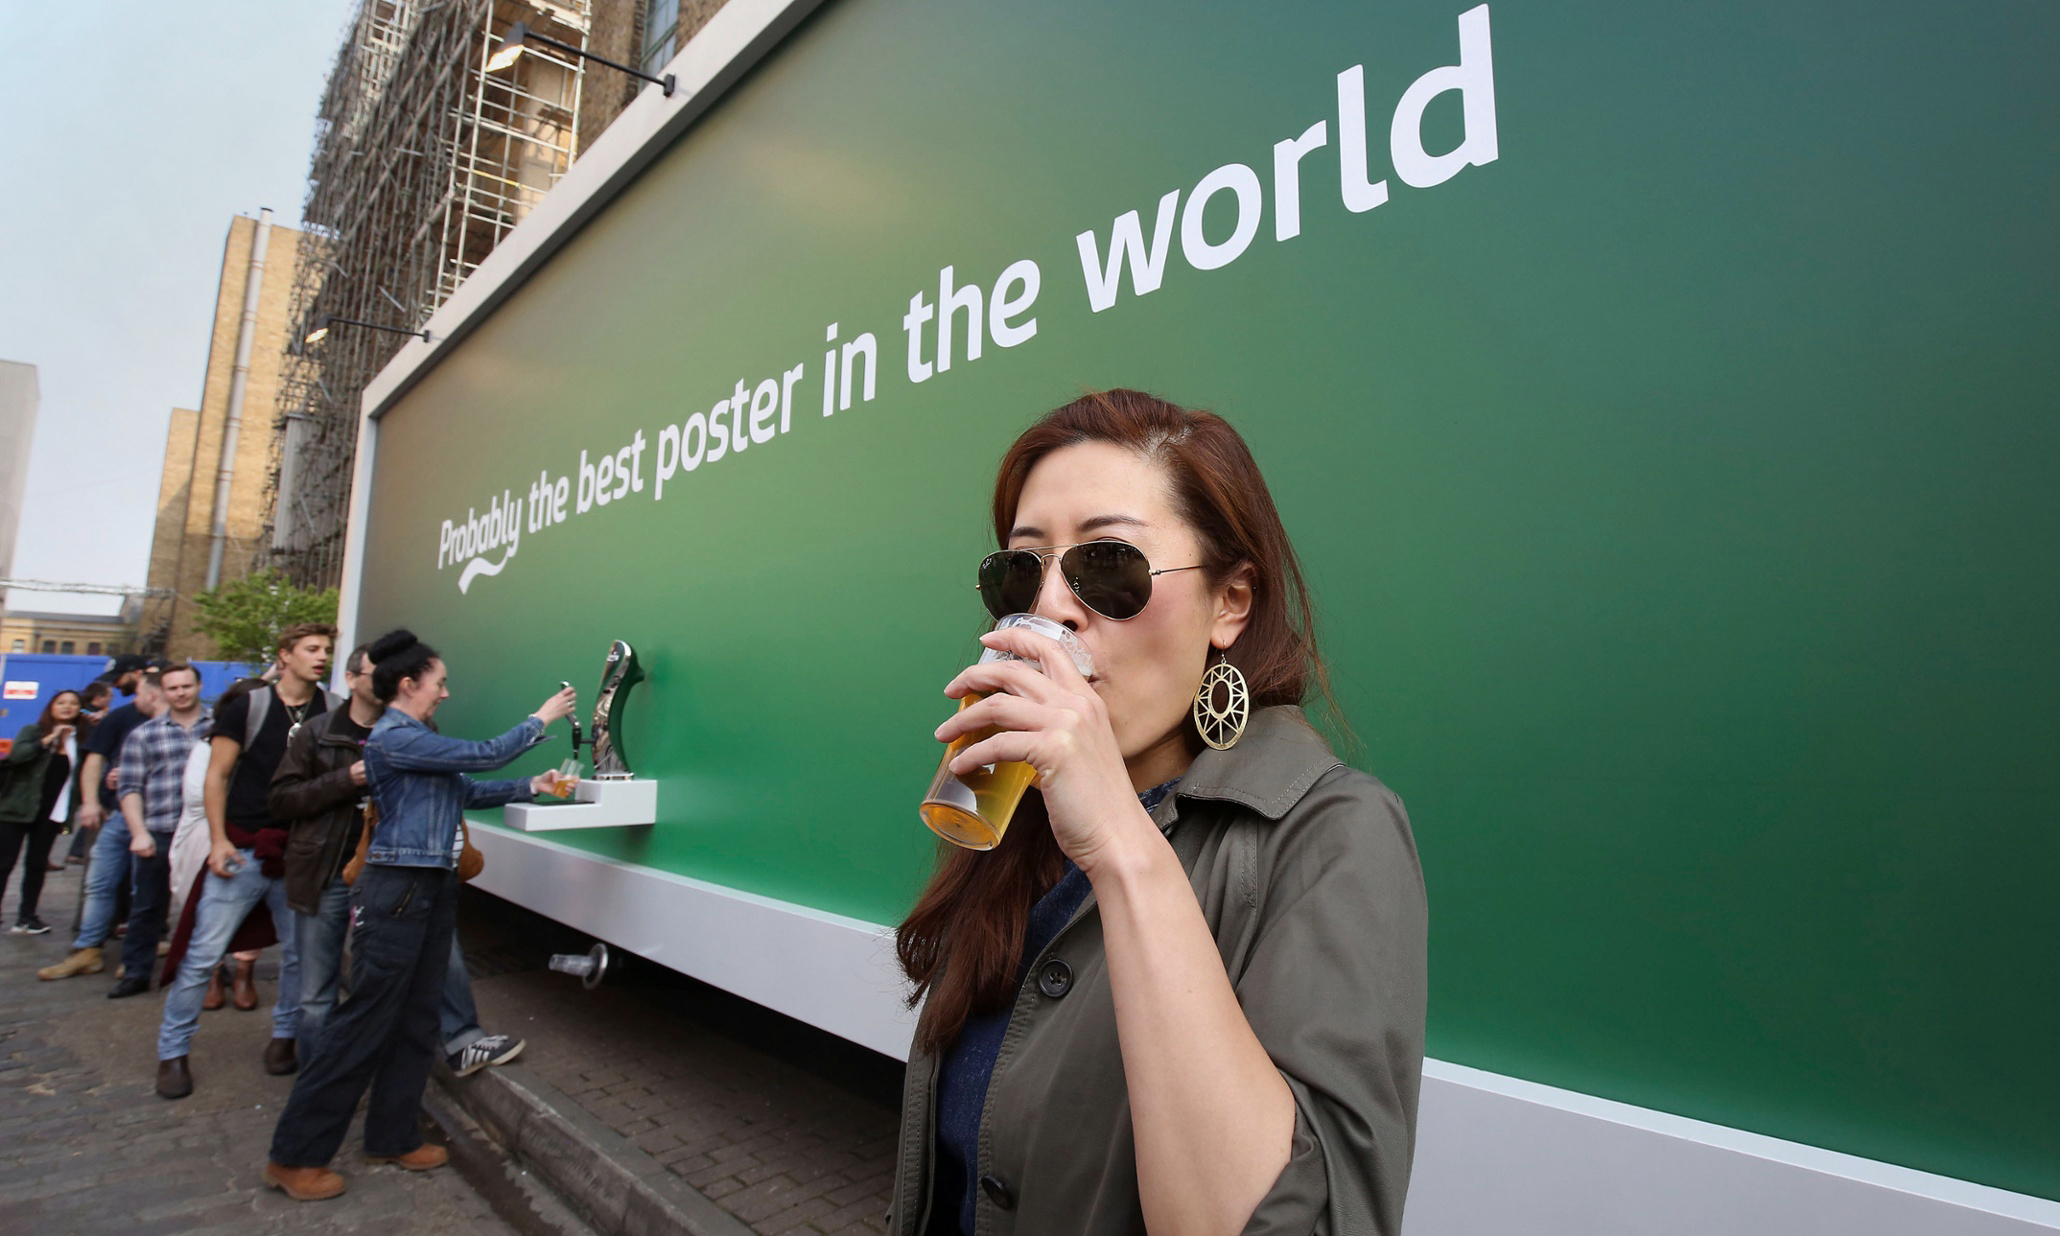 Sylvia Wong with her free Carlsberg beer at the Truman Brewery in London after the brewing company created the world's first beer dispensing billboard. PRESS ASSOCIATION Photo. Picture date: Wednesday April 8, 2015. Photo credit should read: Philip Toscano/PA Wire